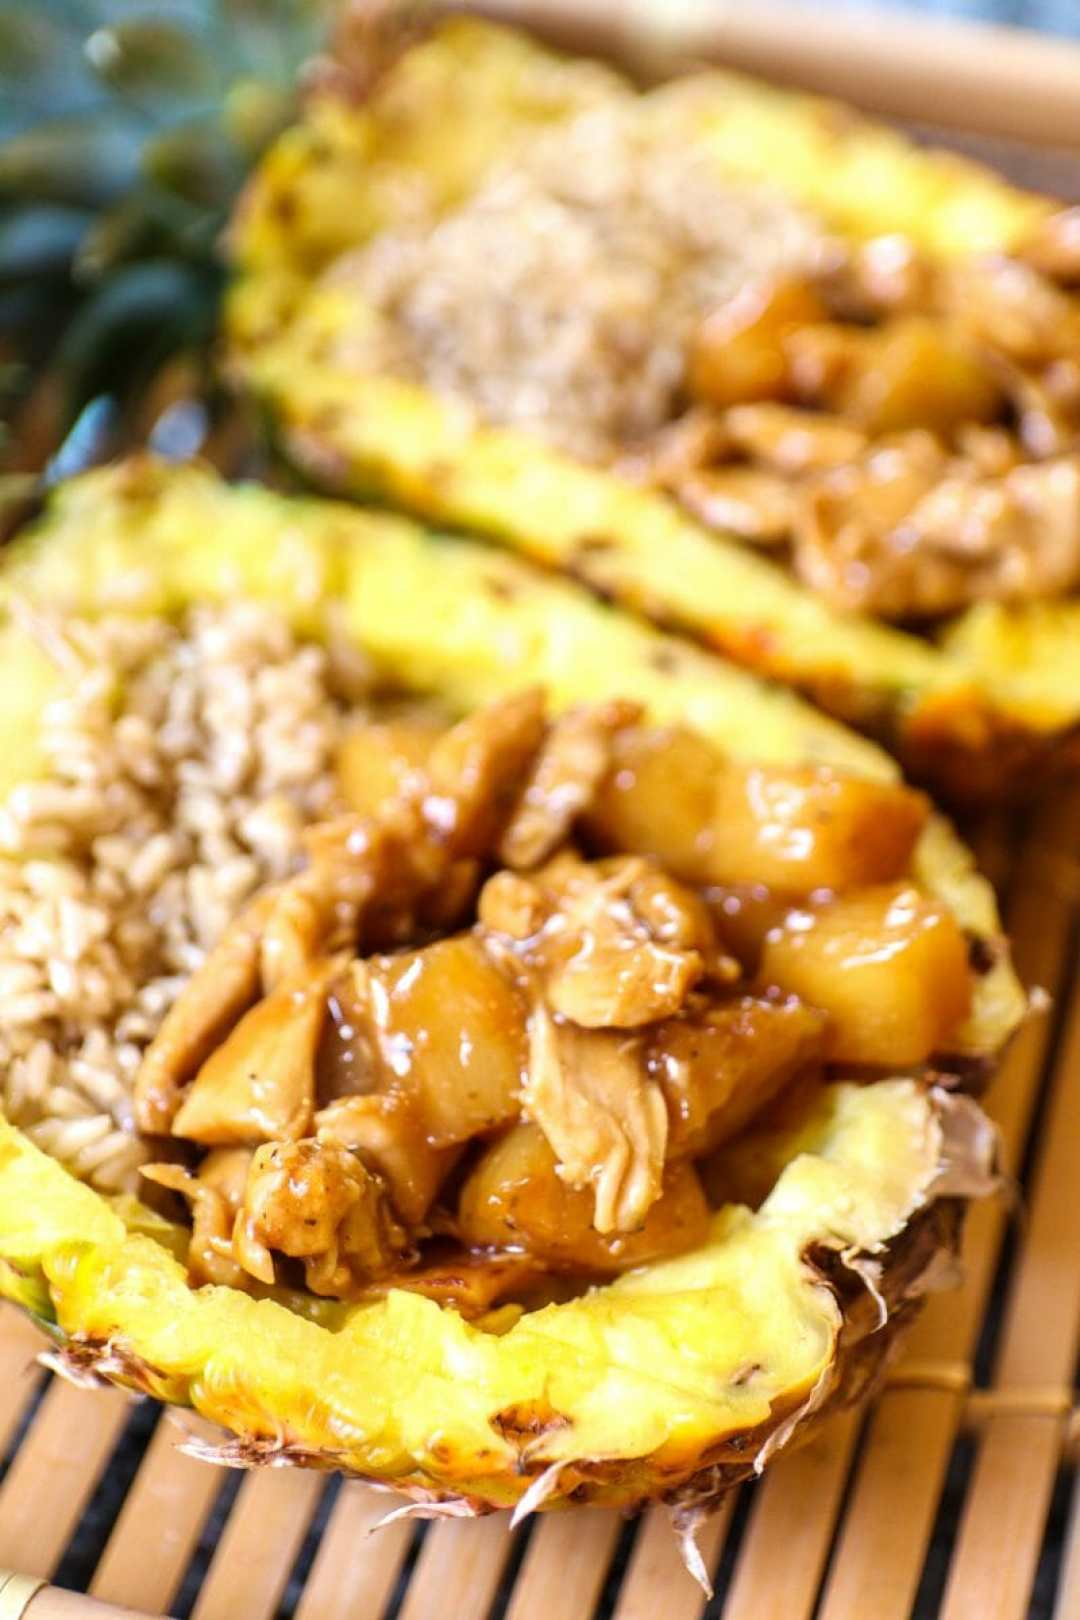 Pineapple chicken and rice recipe by JC Phelps of JCP Eats, a Kentucky based food, travel, and lifestyle blog